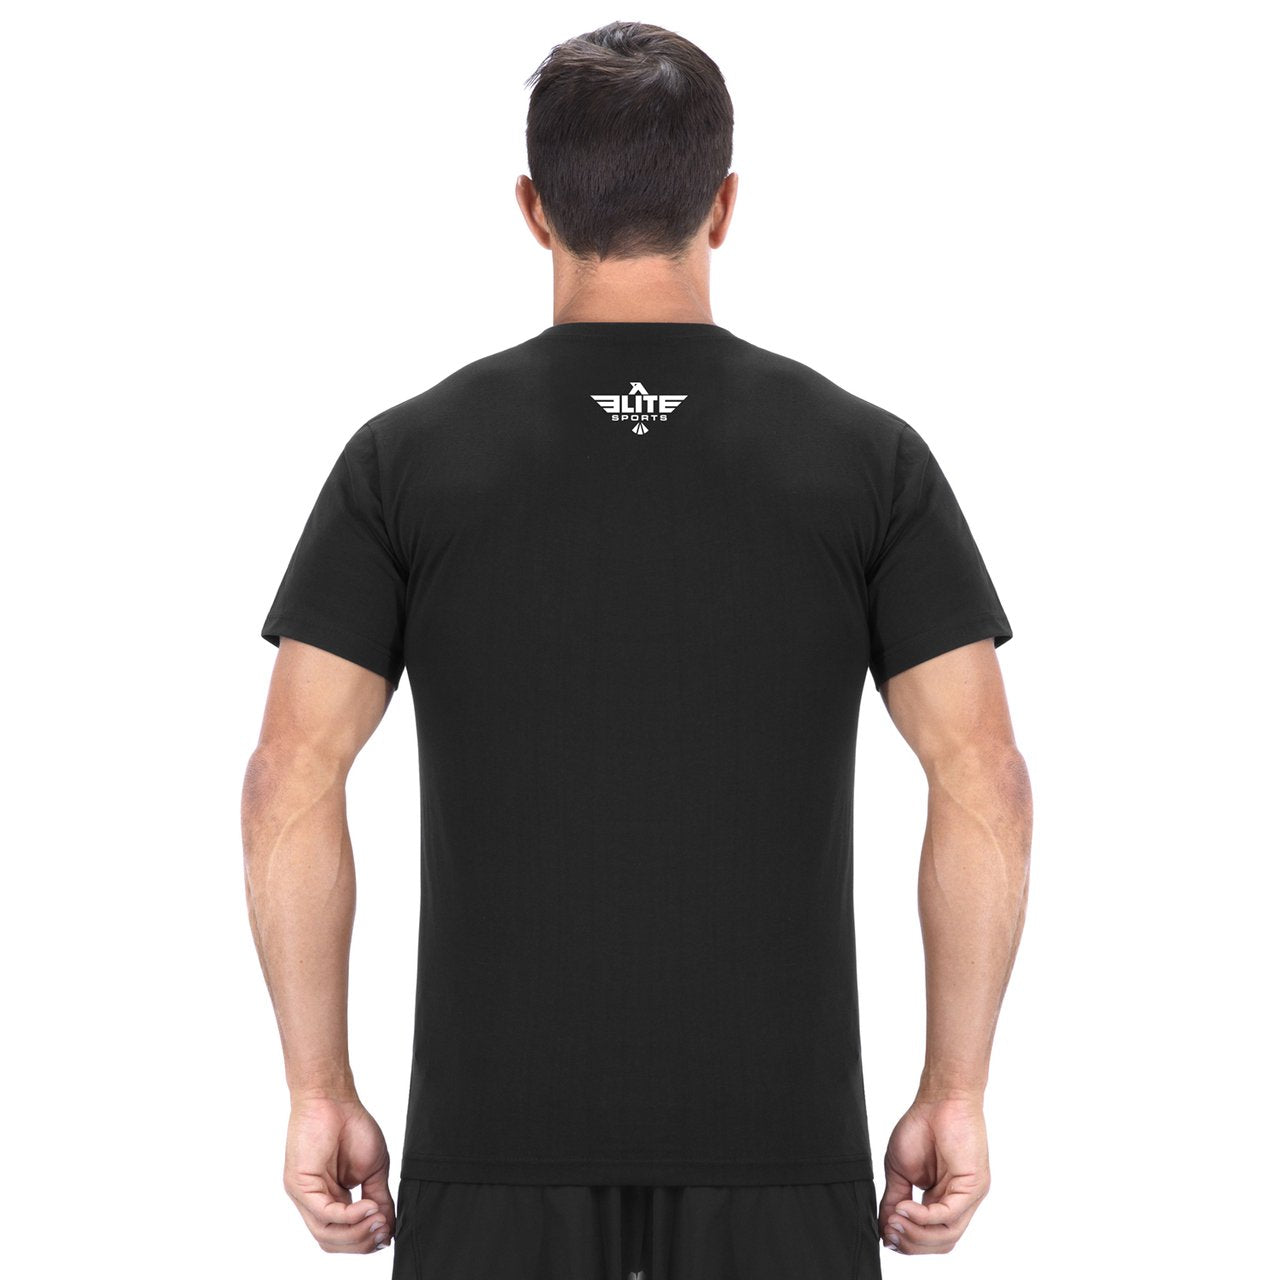 Load image into Gallery viewer, Elite Sports Black Wrestling T-Shirts